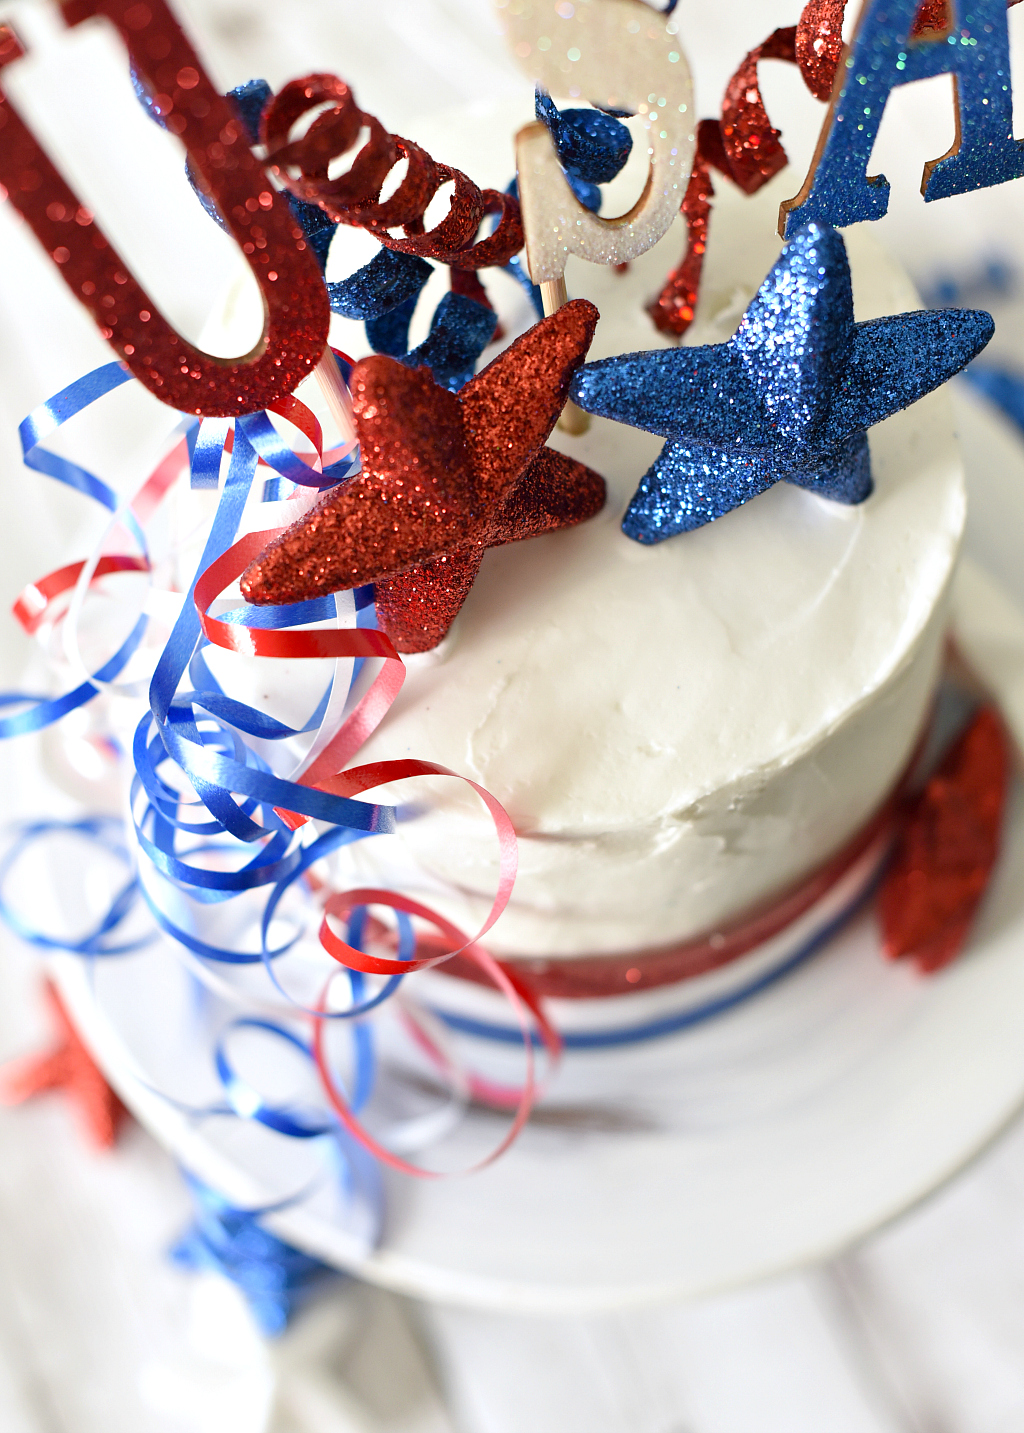 How to Make a Patriotic Cake for the 4th of July